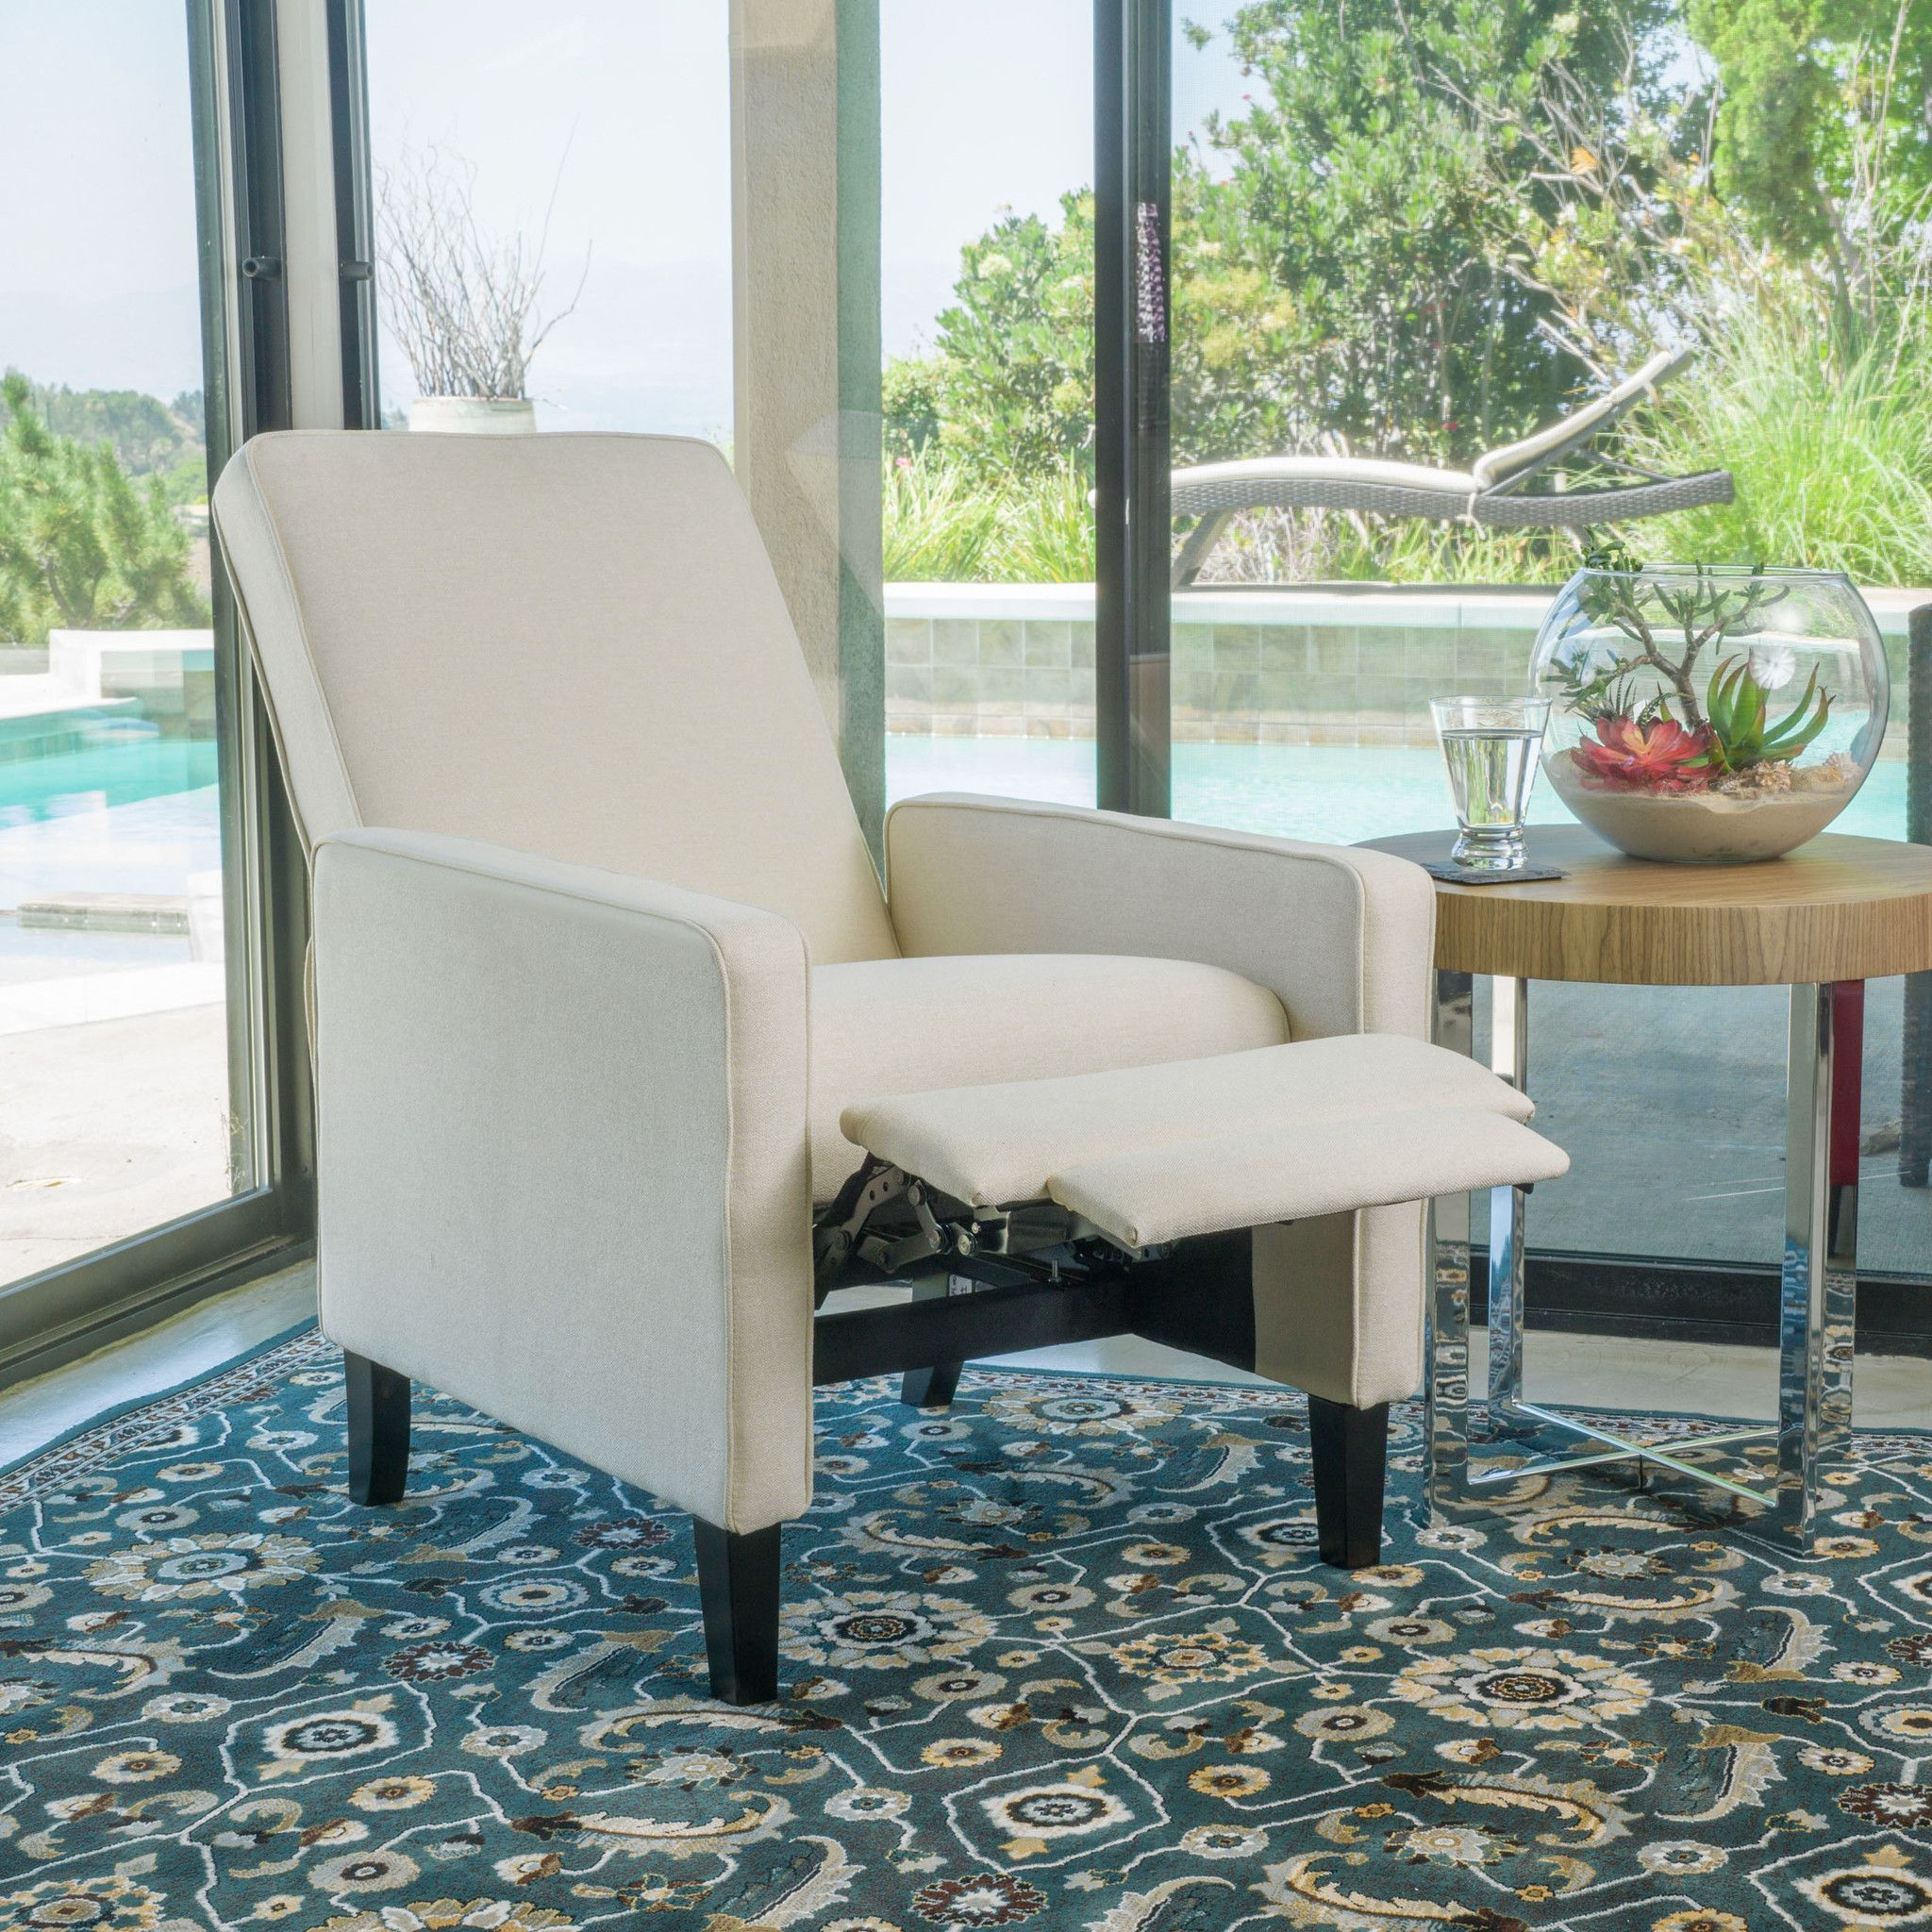 club chairs for small spaces kitchen island and olinda contemporary beige fabric recliner chair project book featuring a solid frame sturdy feet added stability strength this comfortable reclining is great